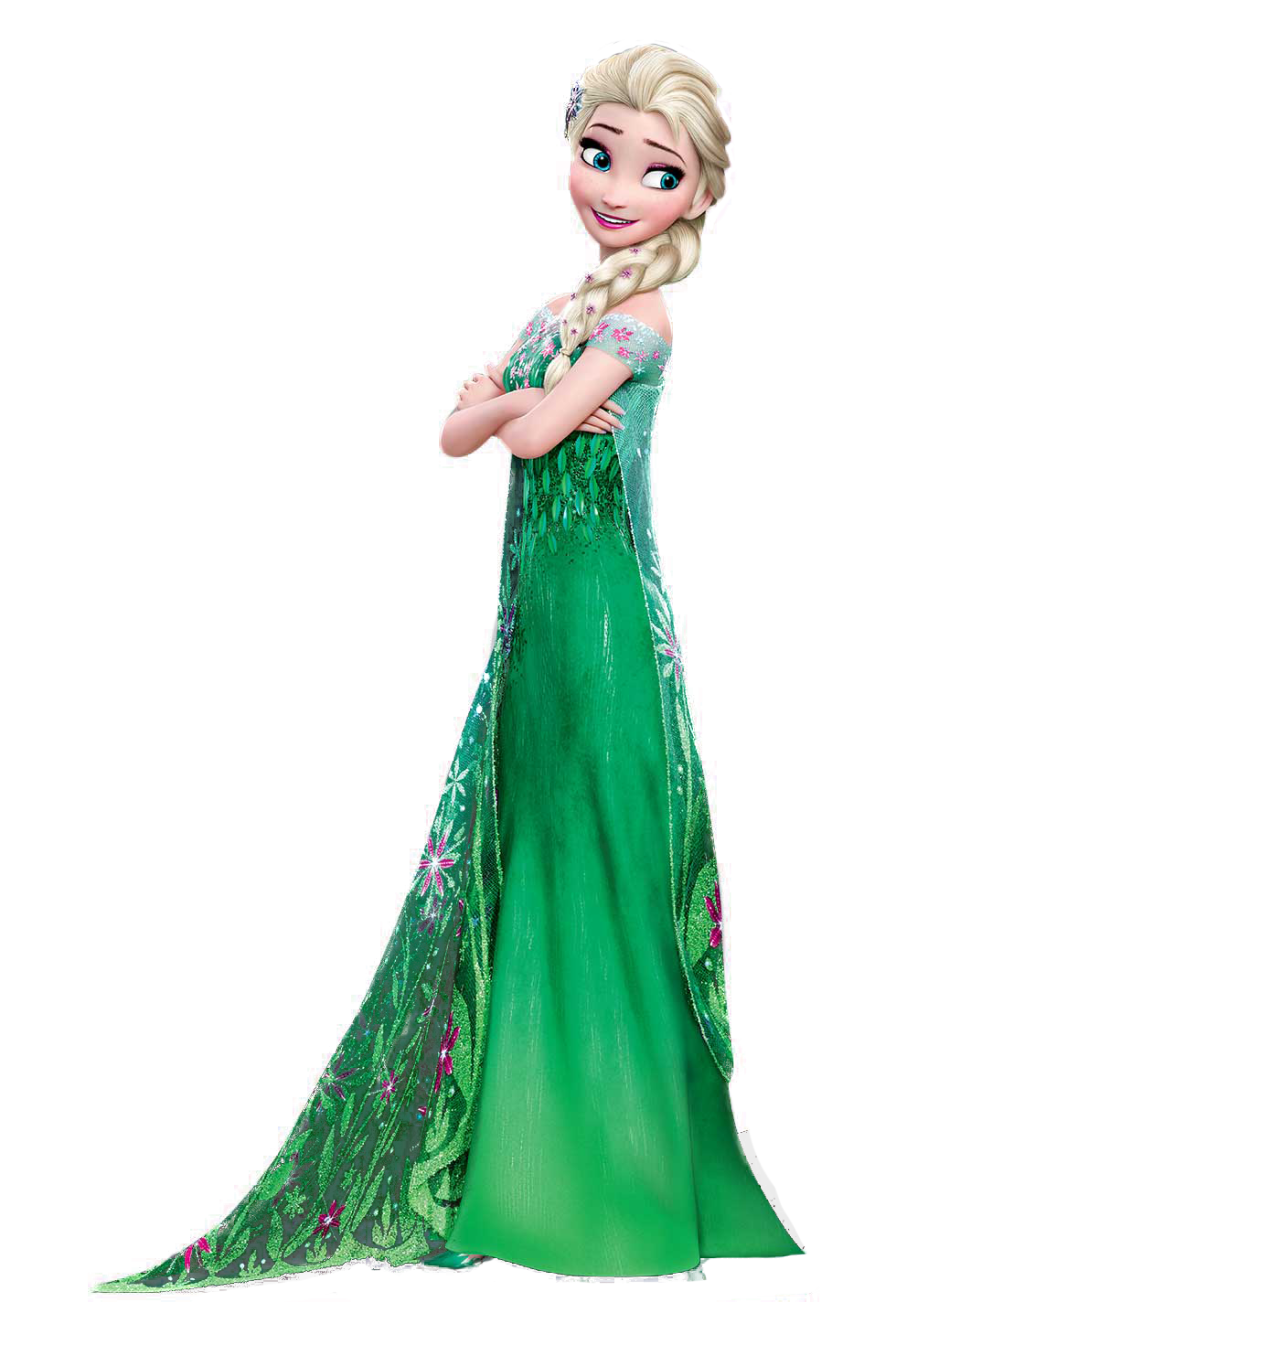 Snowflake clipart black and white disney frozen clip Elsa Transparent | Frozen and Tangled | Pinterest | Elsa, Disney ... clip